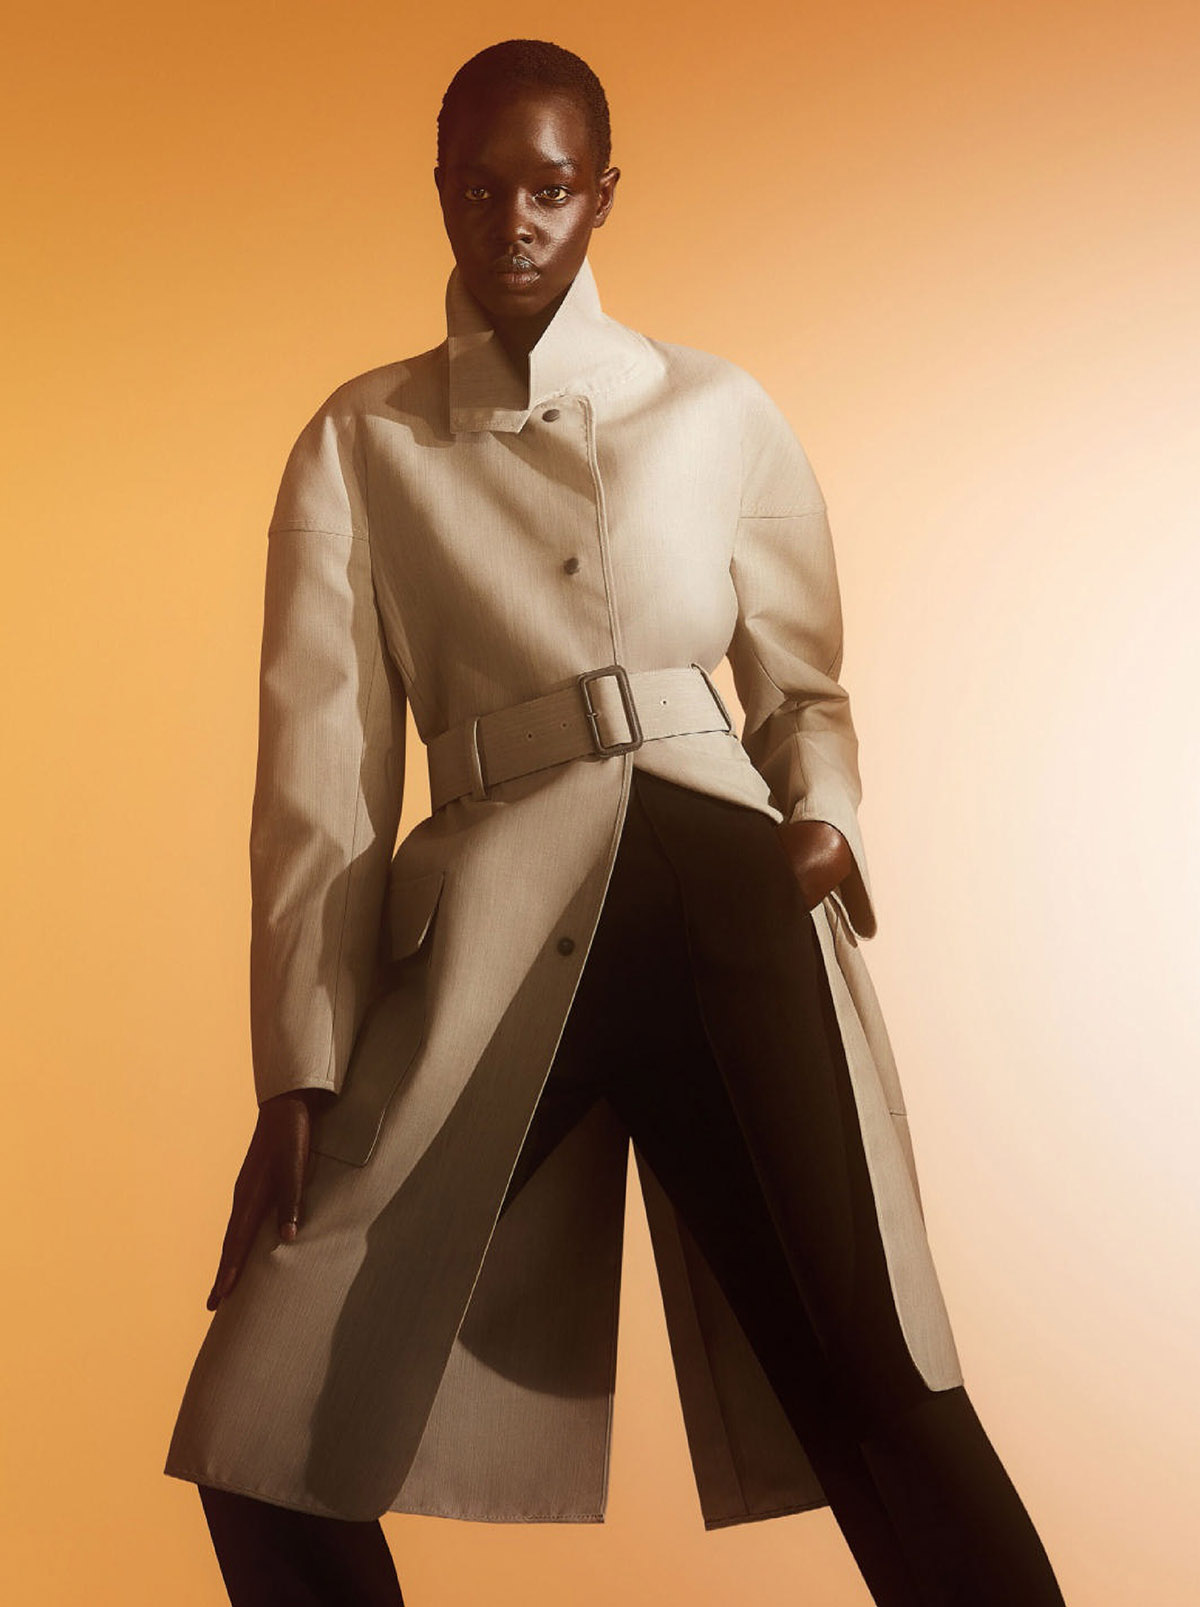 Akuol Deng Atem and Patrick Rom by Josh David Payne for Wallpaper* Magazine March 2021